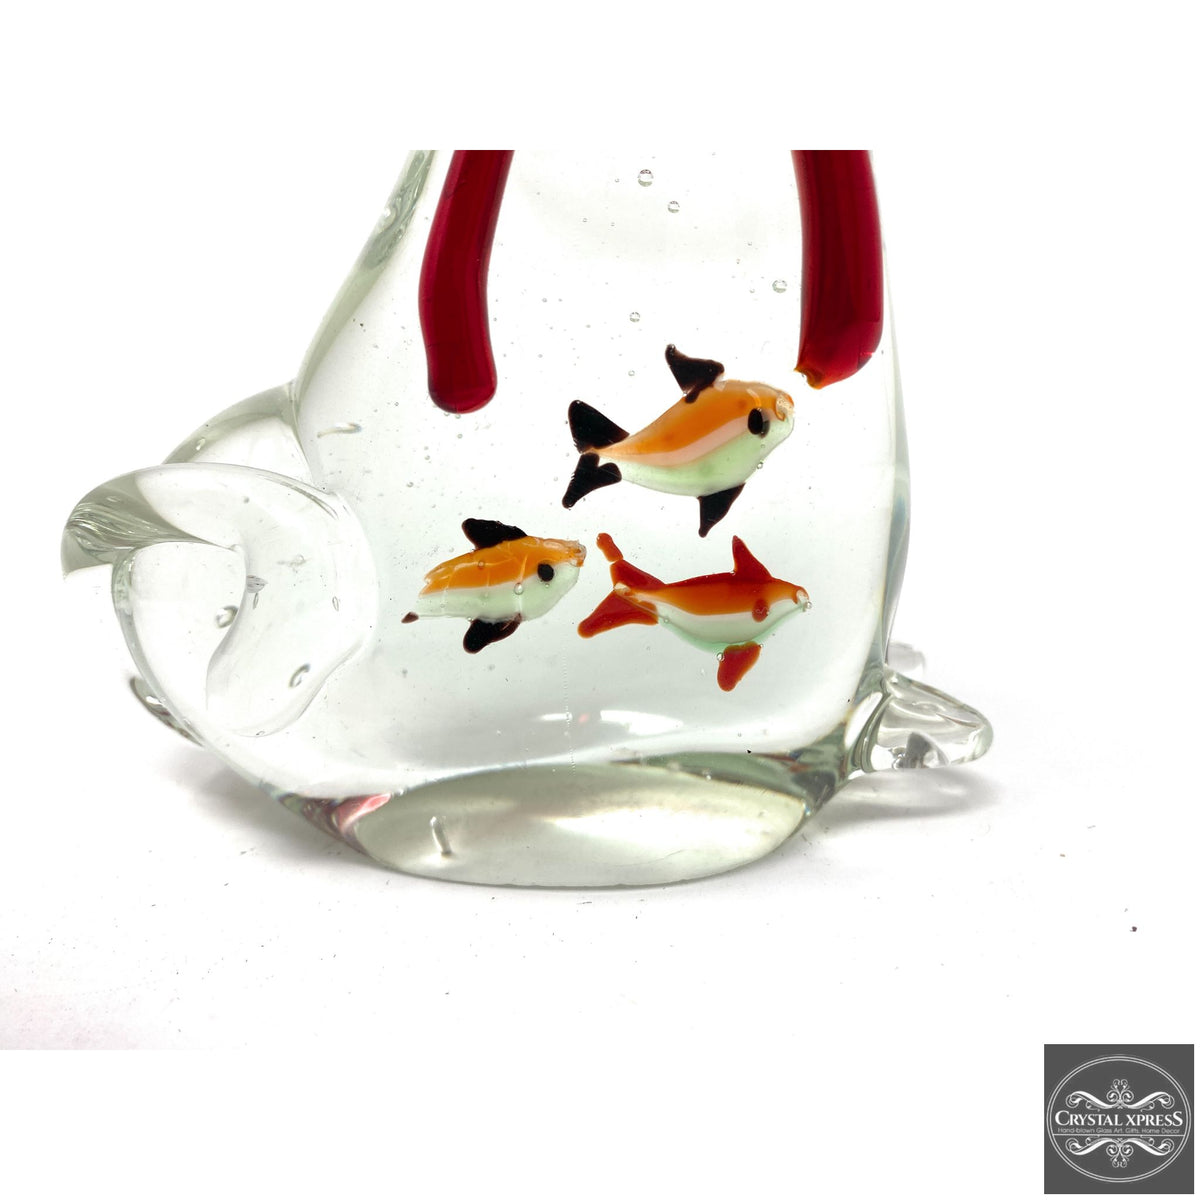 "New 6"" Hand Blown Glass Cat Figurine with Red Ribbon Around Neck and Small Fish Inside The BellyCrystal Xpress"